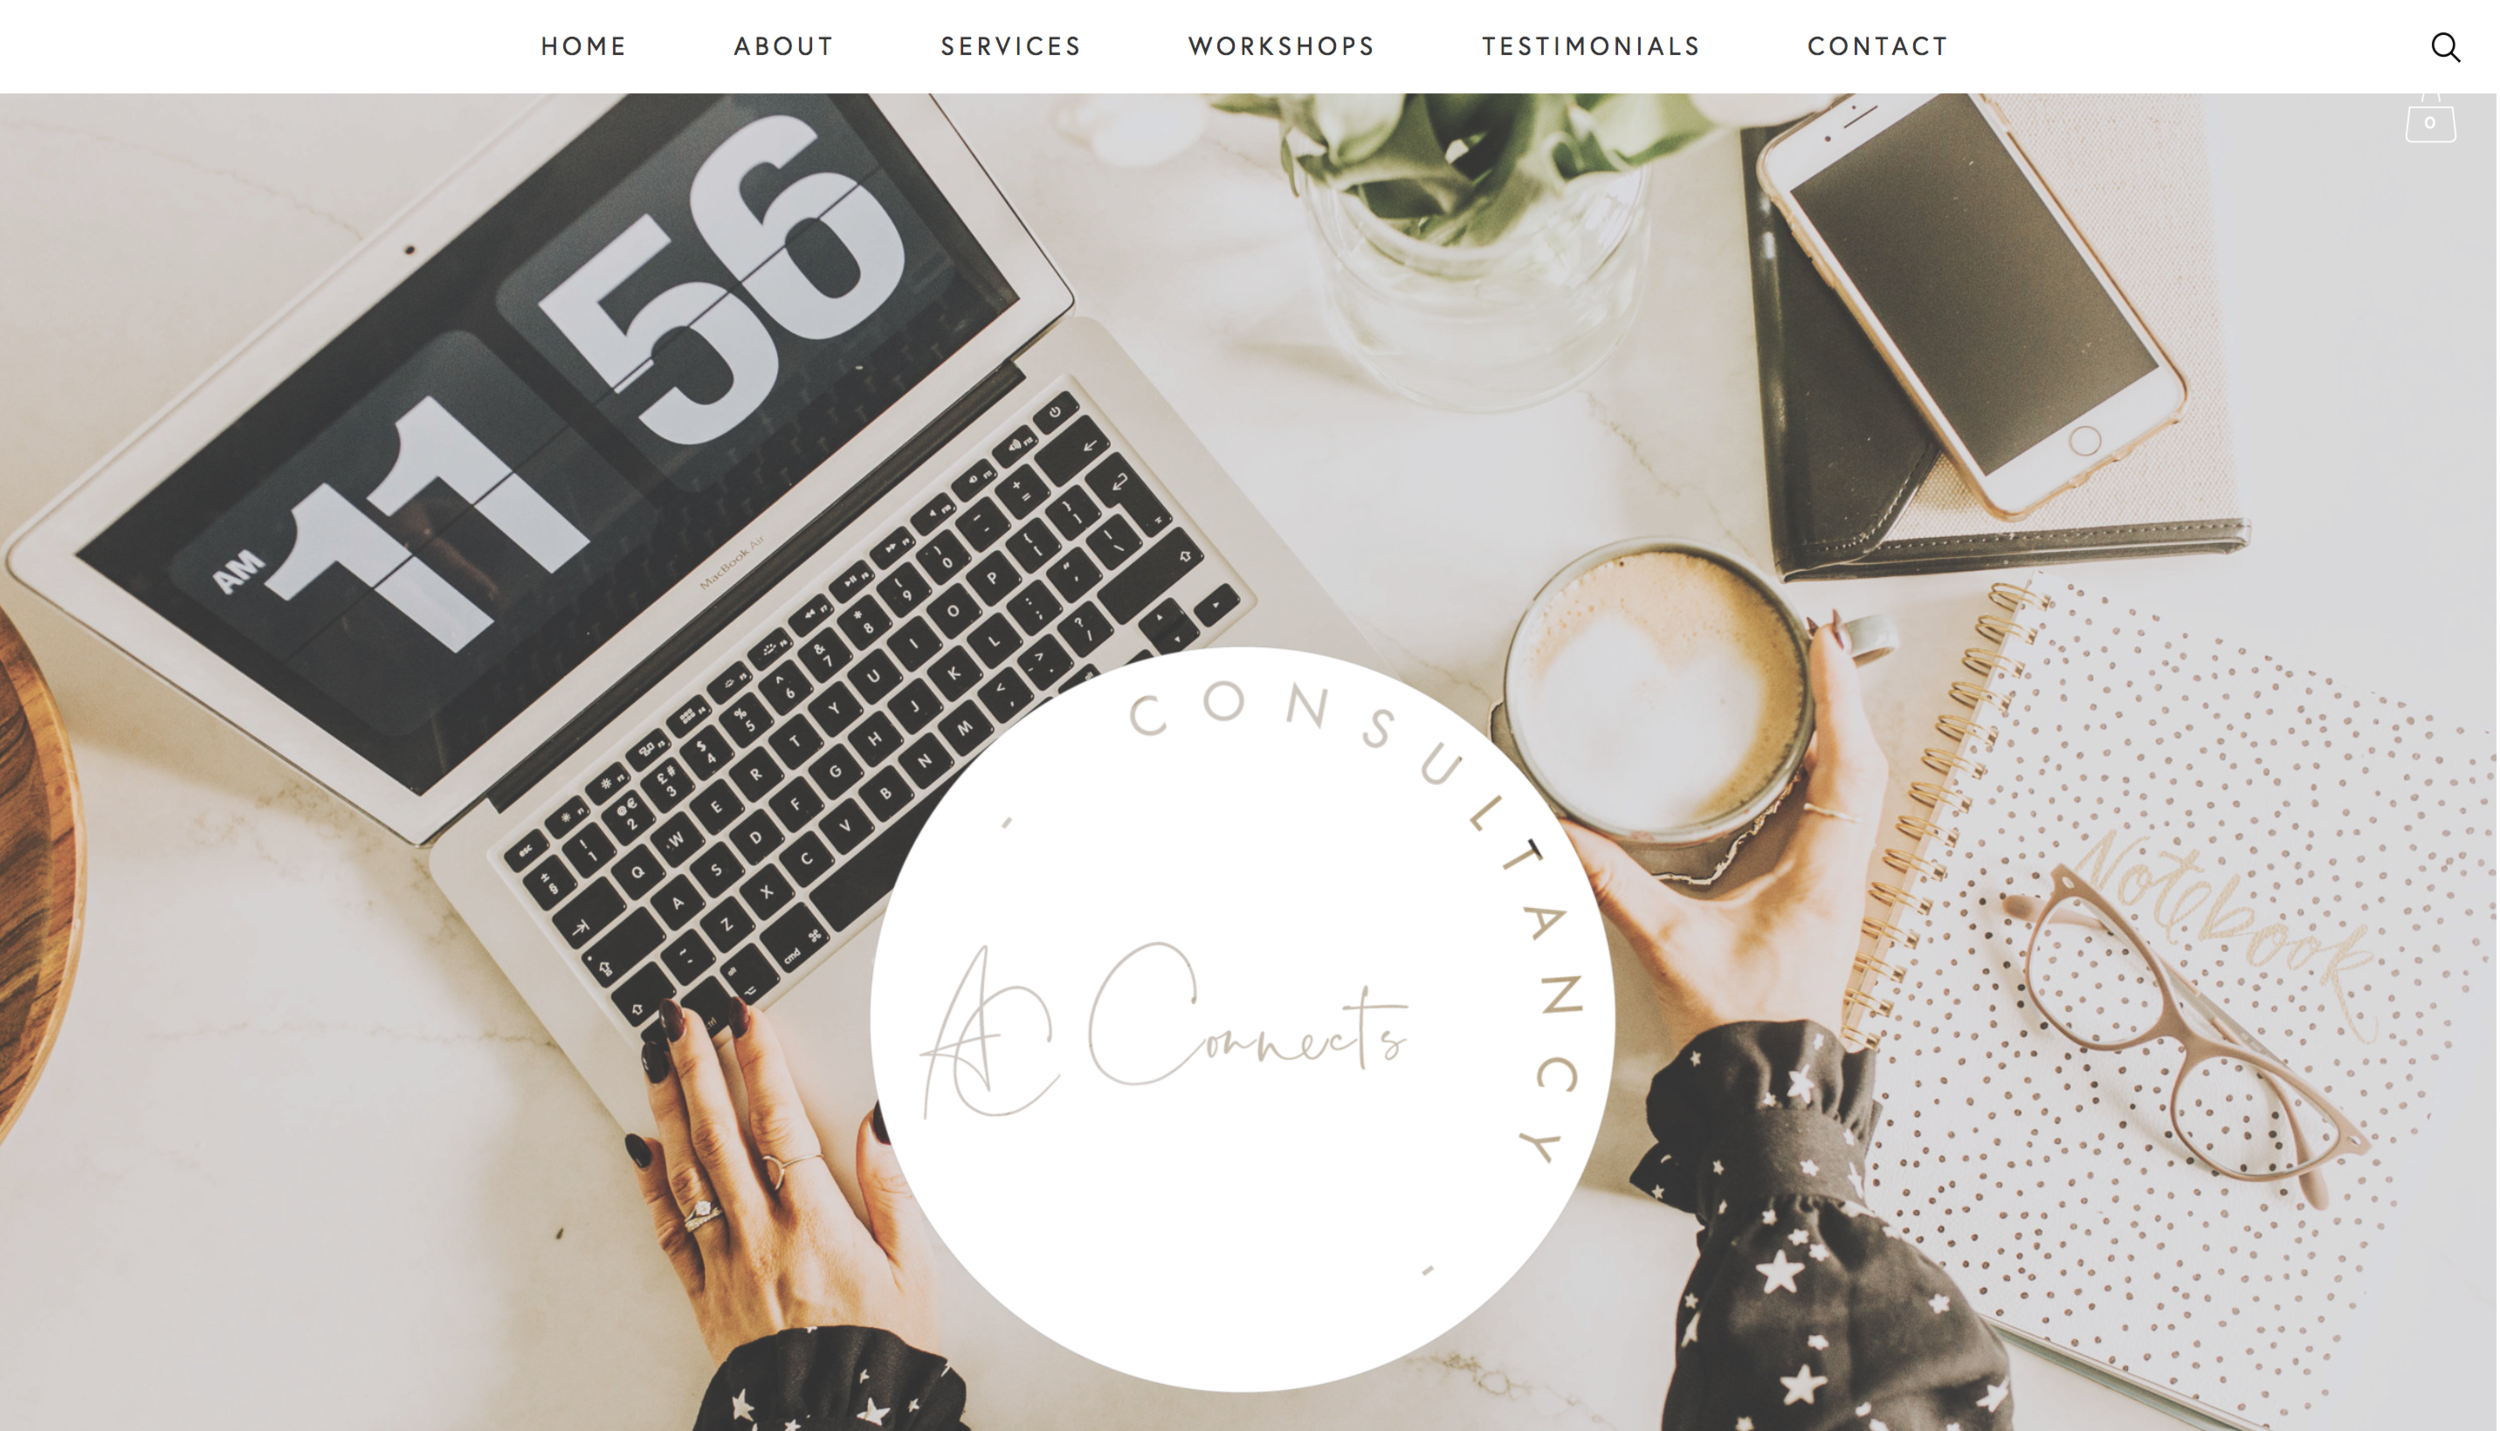 AC CONNECTS consultancy website